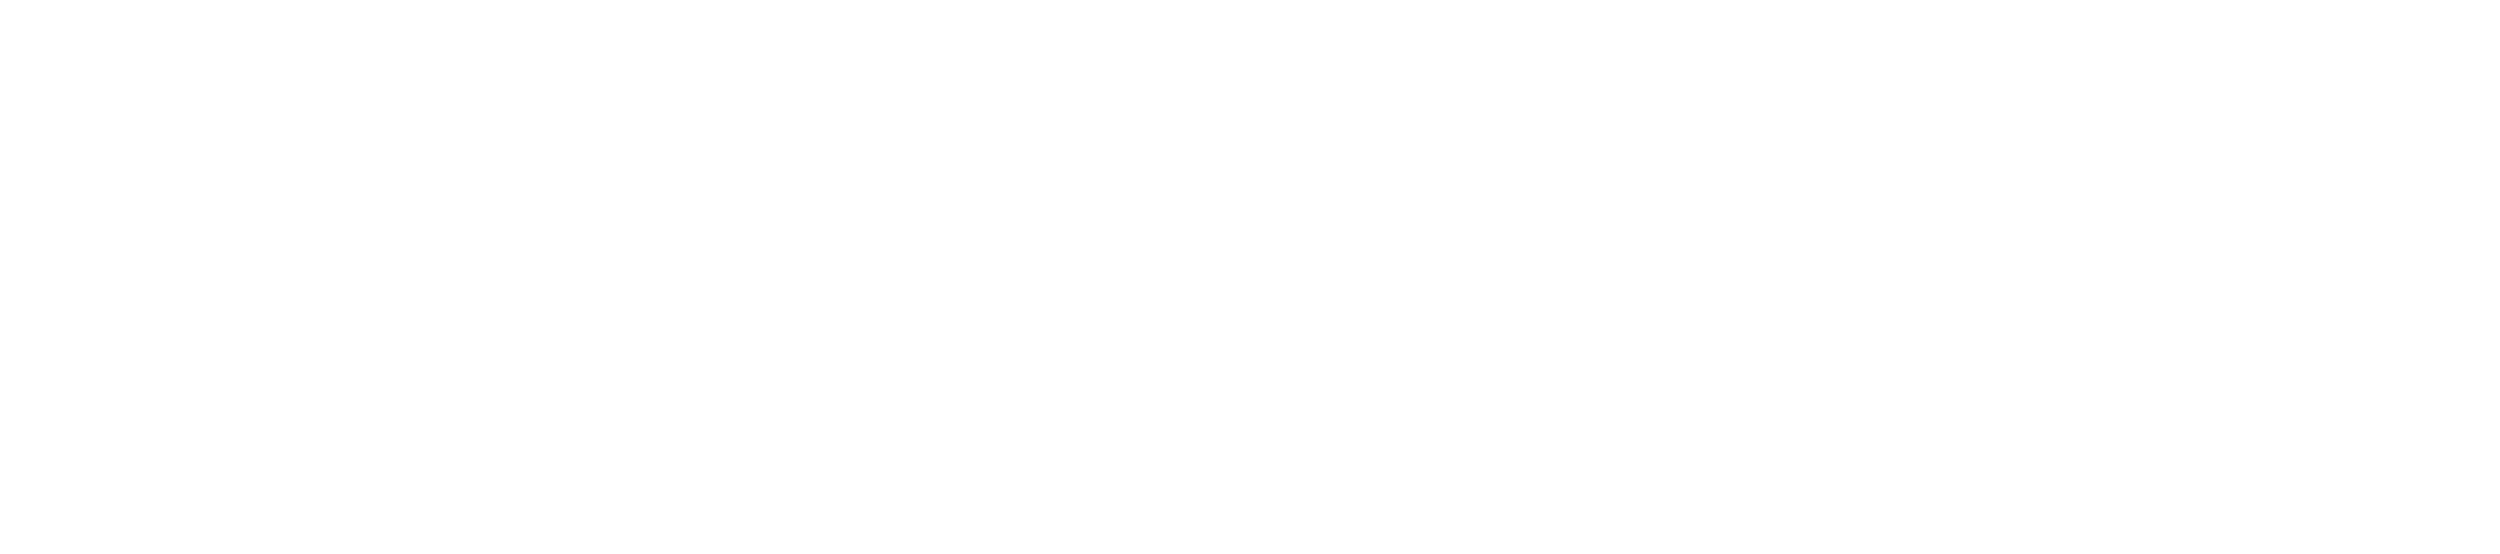 Tulane Classic Explainer Header.png